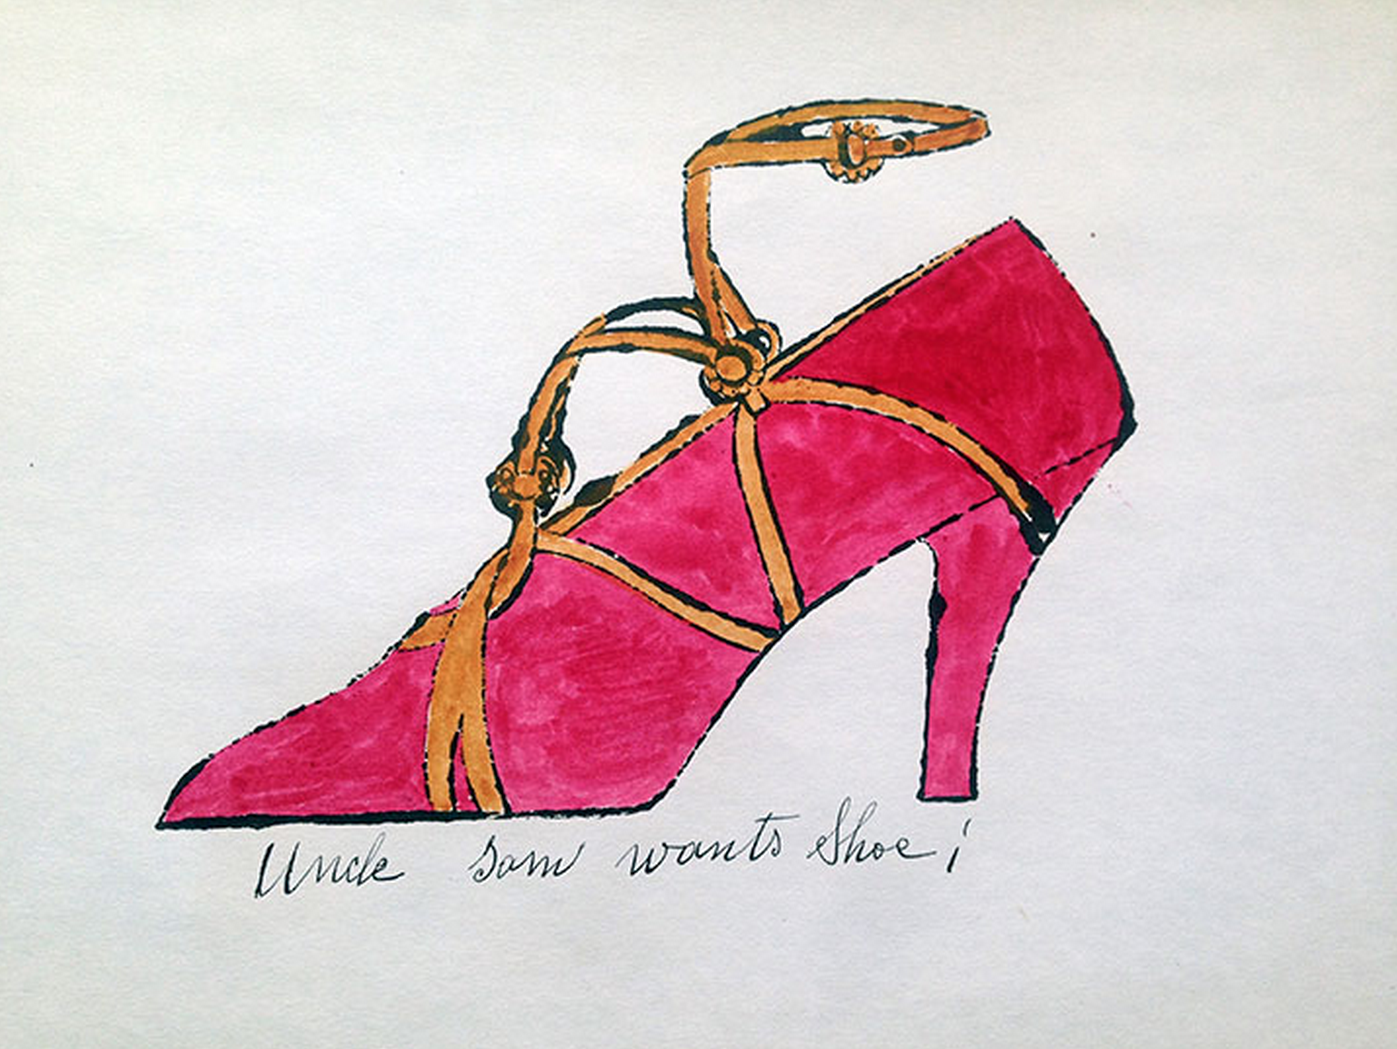 Uncle Sam Wants Shoe by Andy Warhol